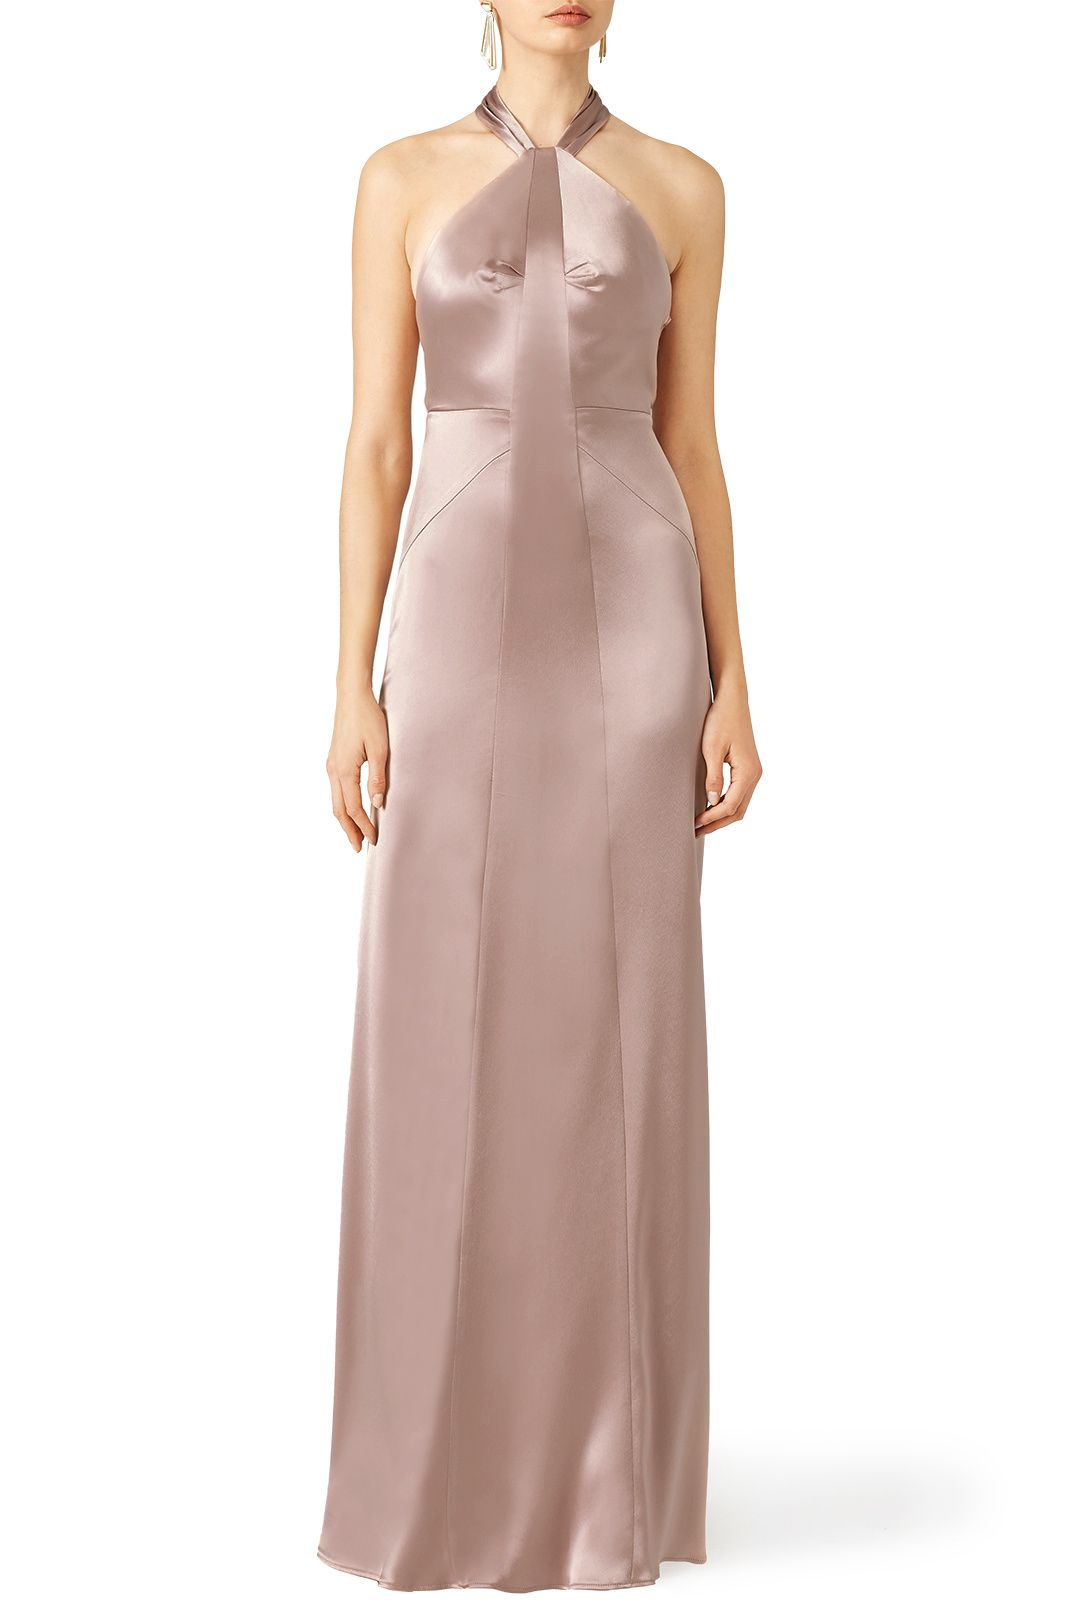 Rent Blush Serena Gown by Jill Jill Stuart for $90 only at Rent the ...